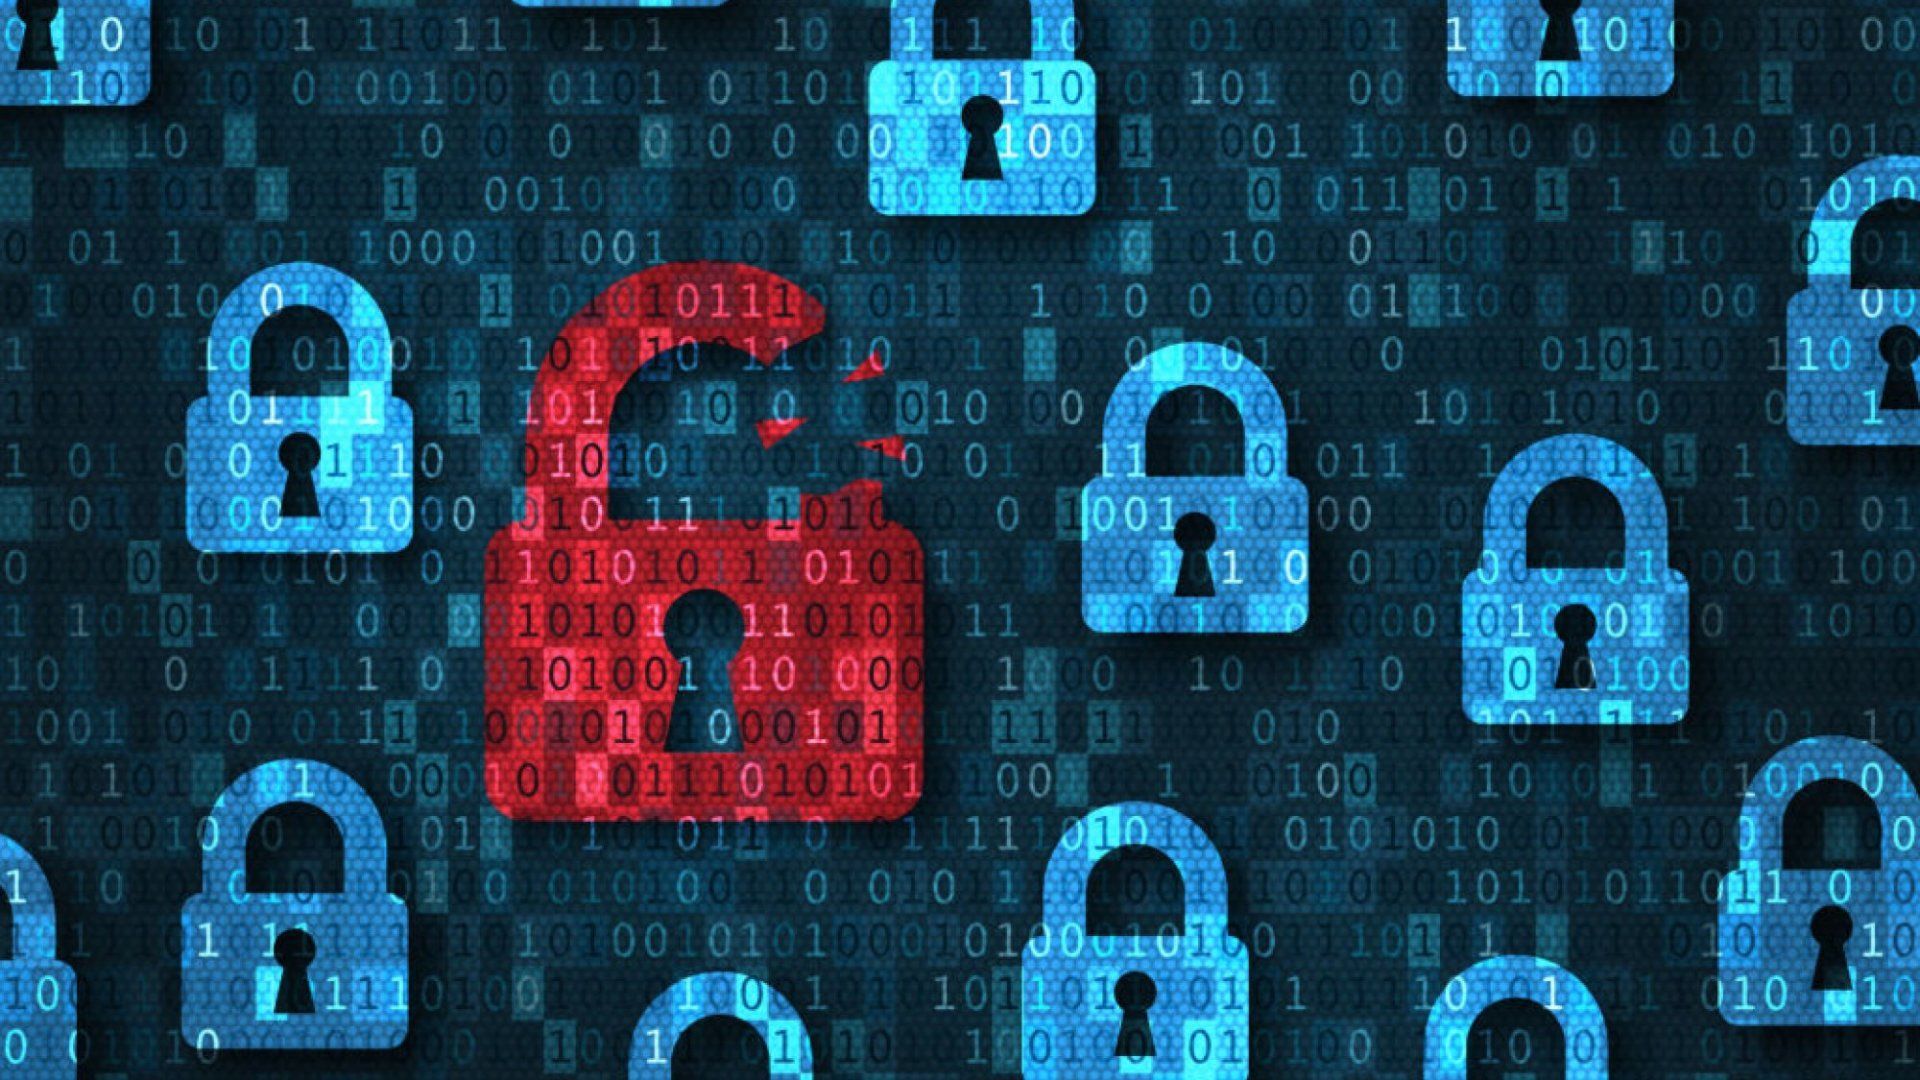 6 Ways to Protect Your Data During Covid-19